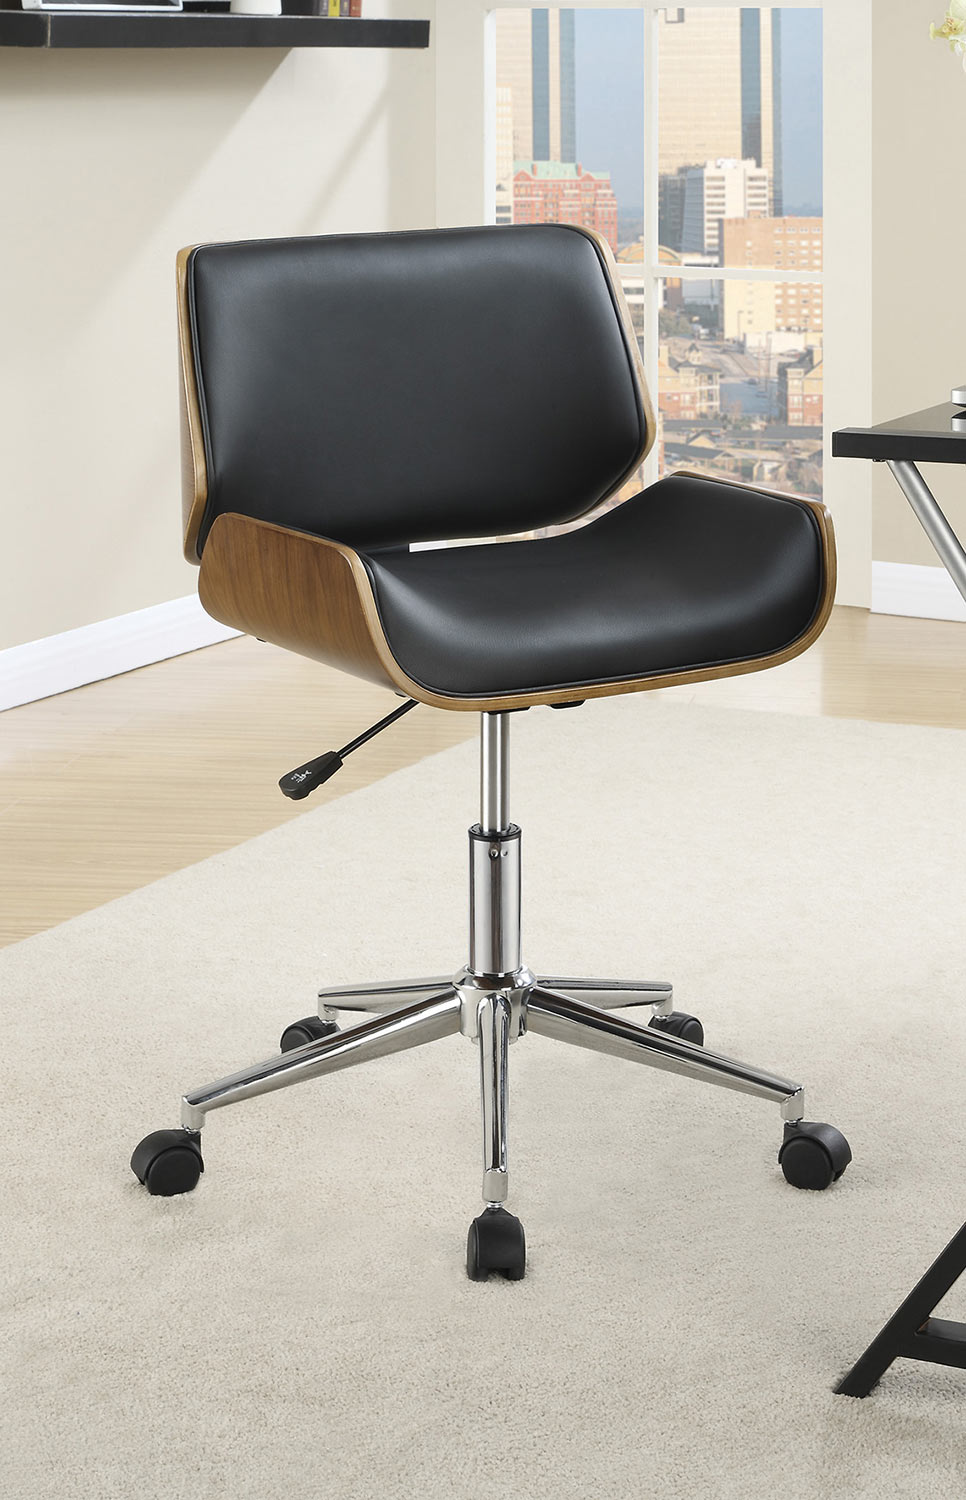 Coaster 800612 Office Chair - Black